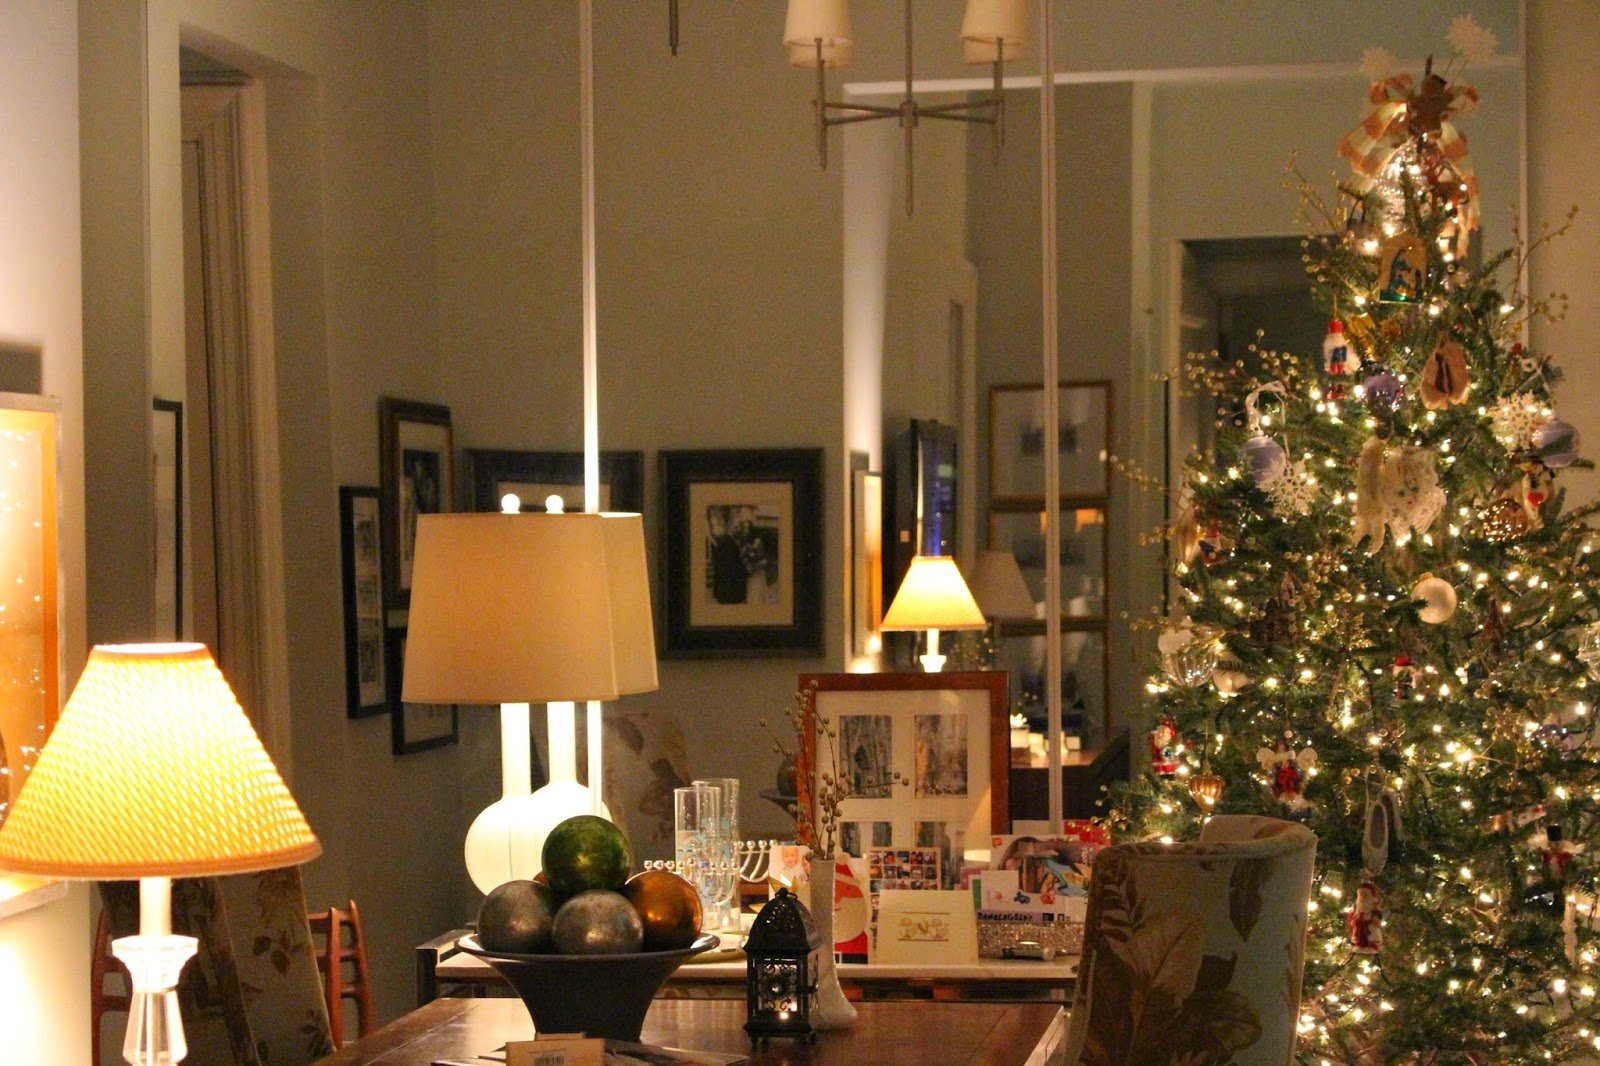 holiday decorating in small spaces my nyc apartment at christmas - Small Decorations For Christmas